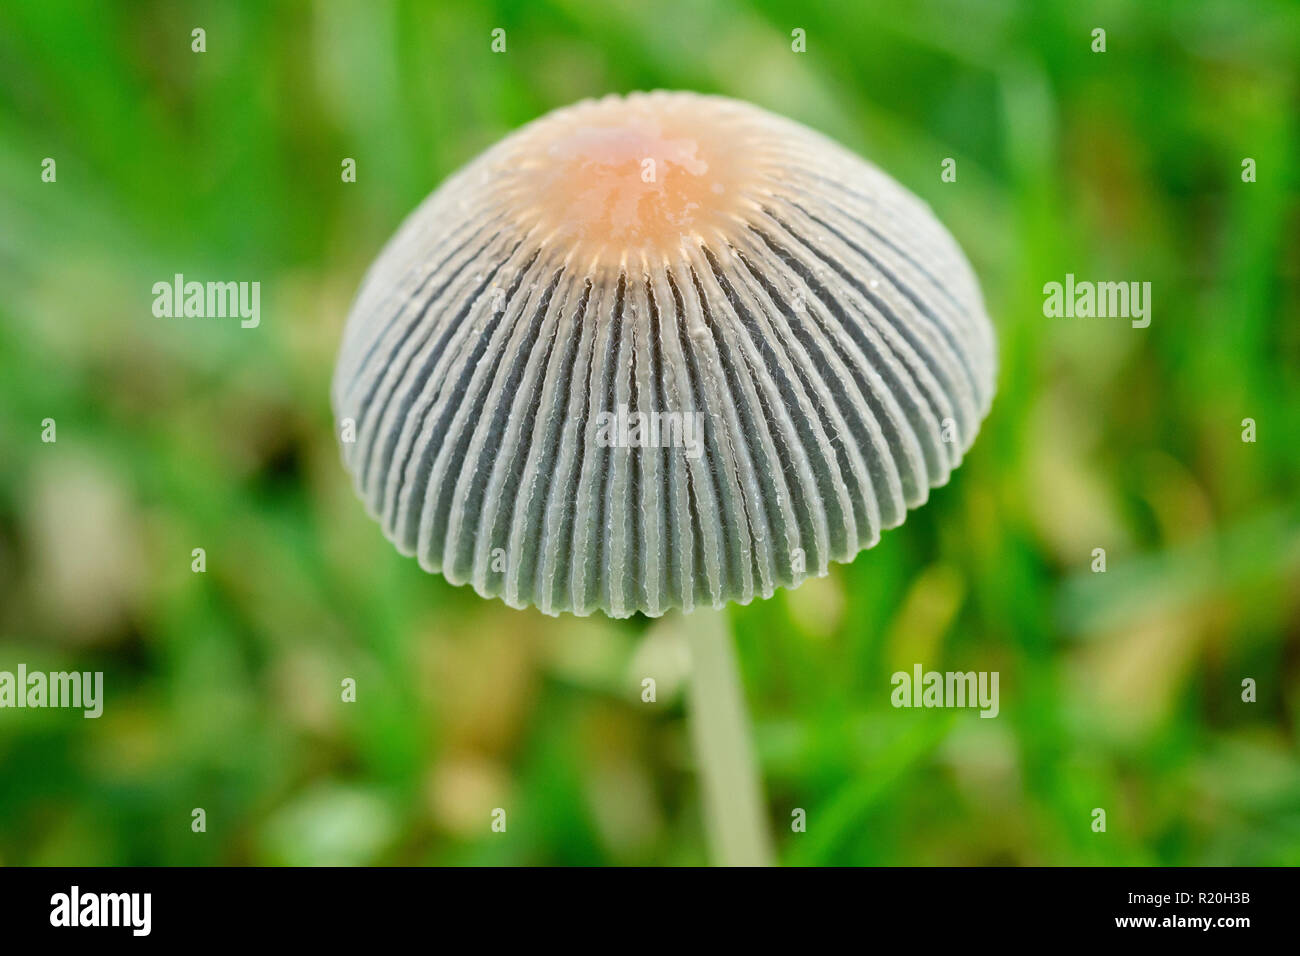 Little Japanese Umbrella Toad-stool (coprinus plicatilis), also called the Pleated Inkcap (parasola plicatilis), close up of the small fruiting body. - Stock Image